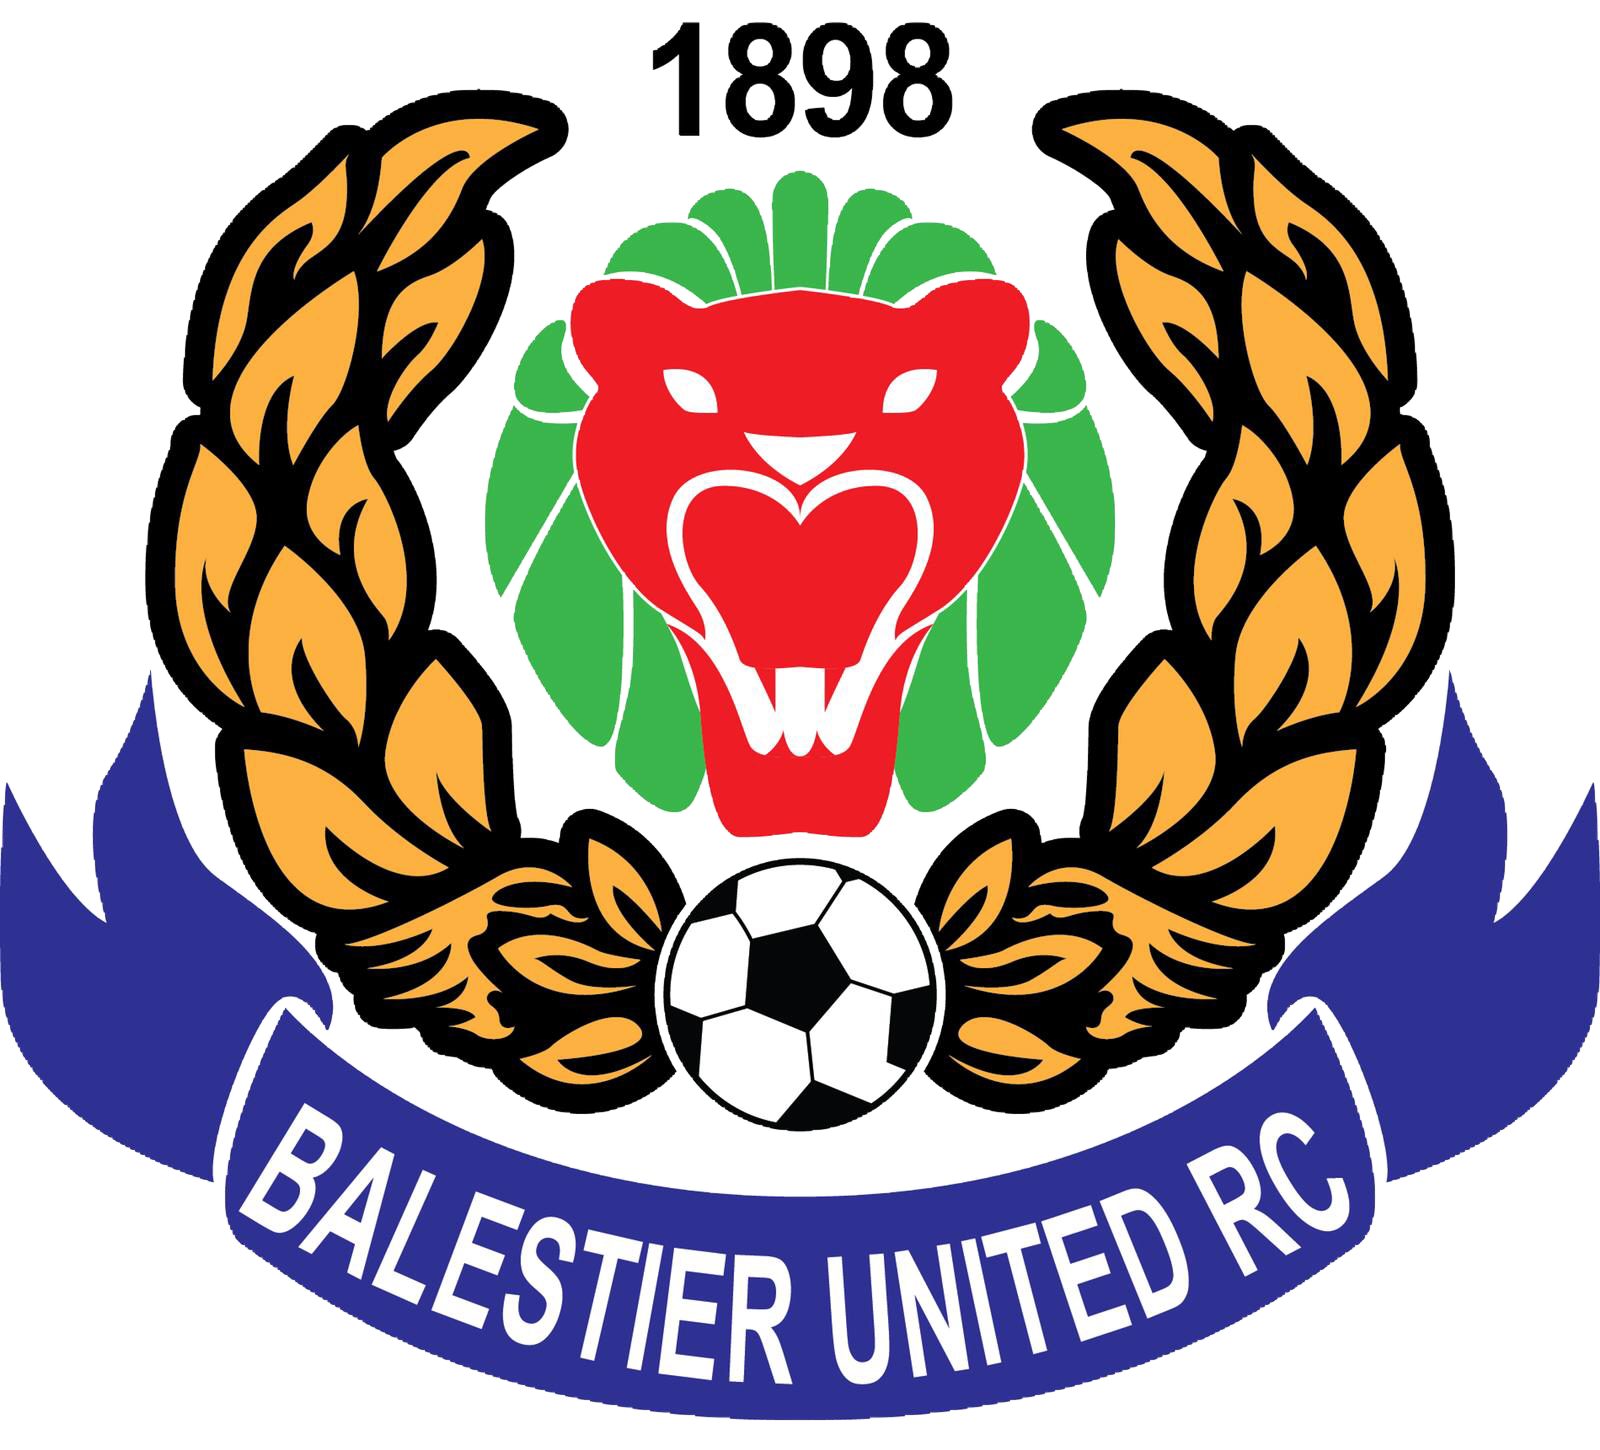 Balestier United RC